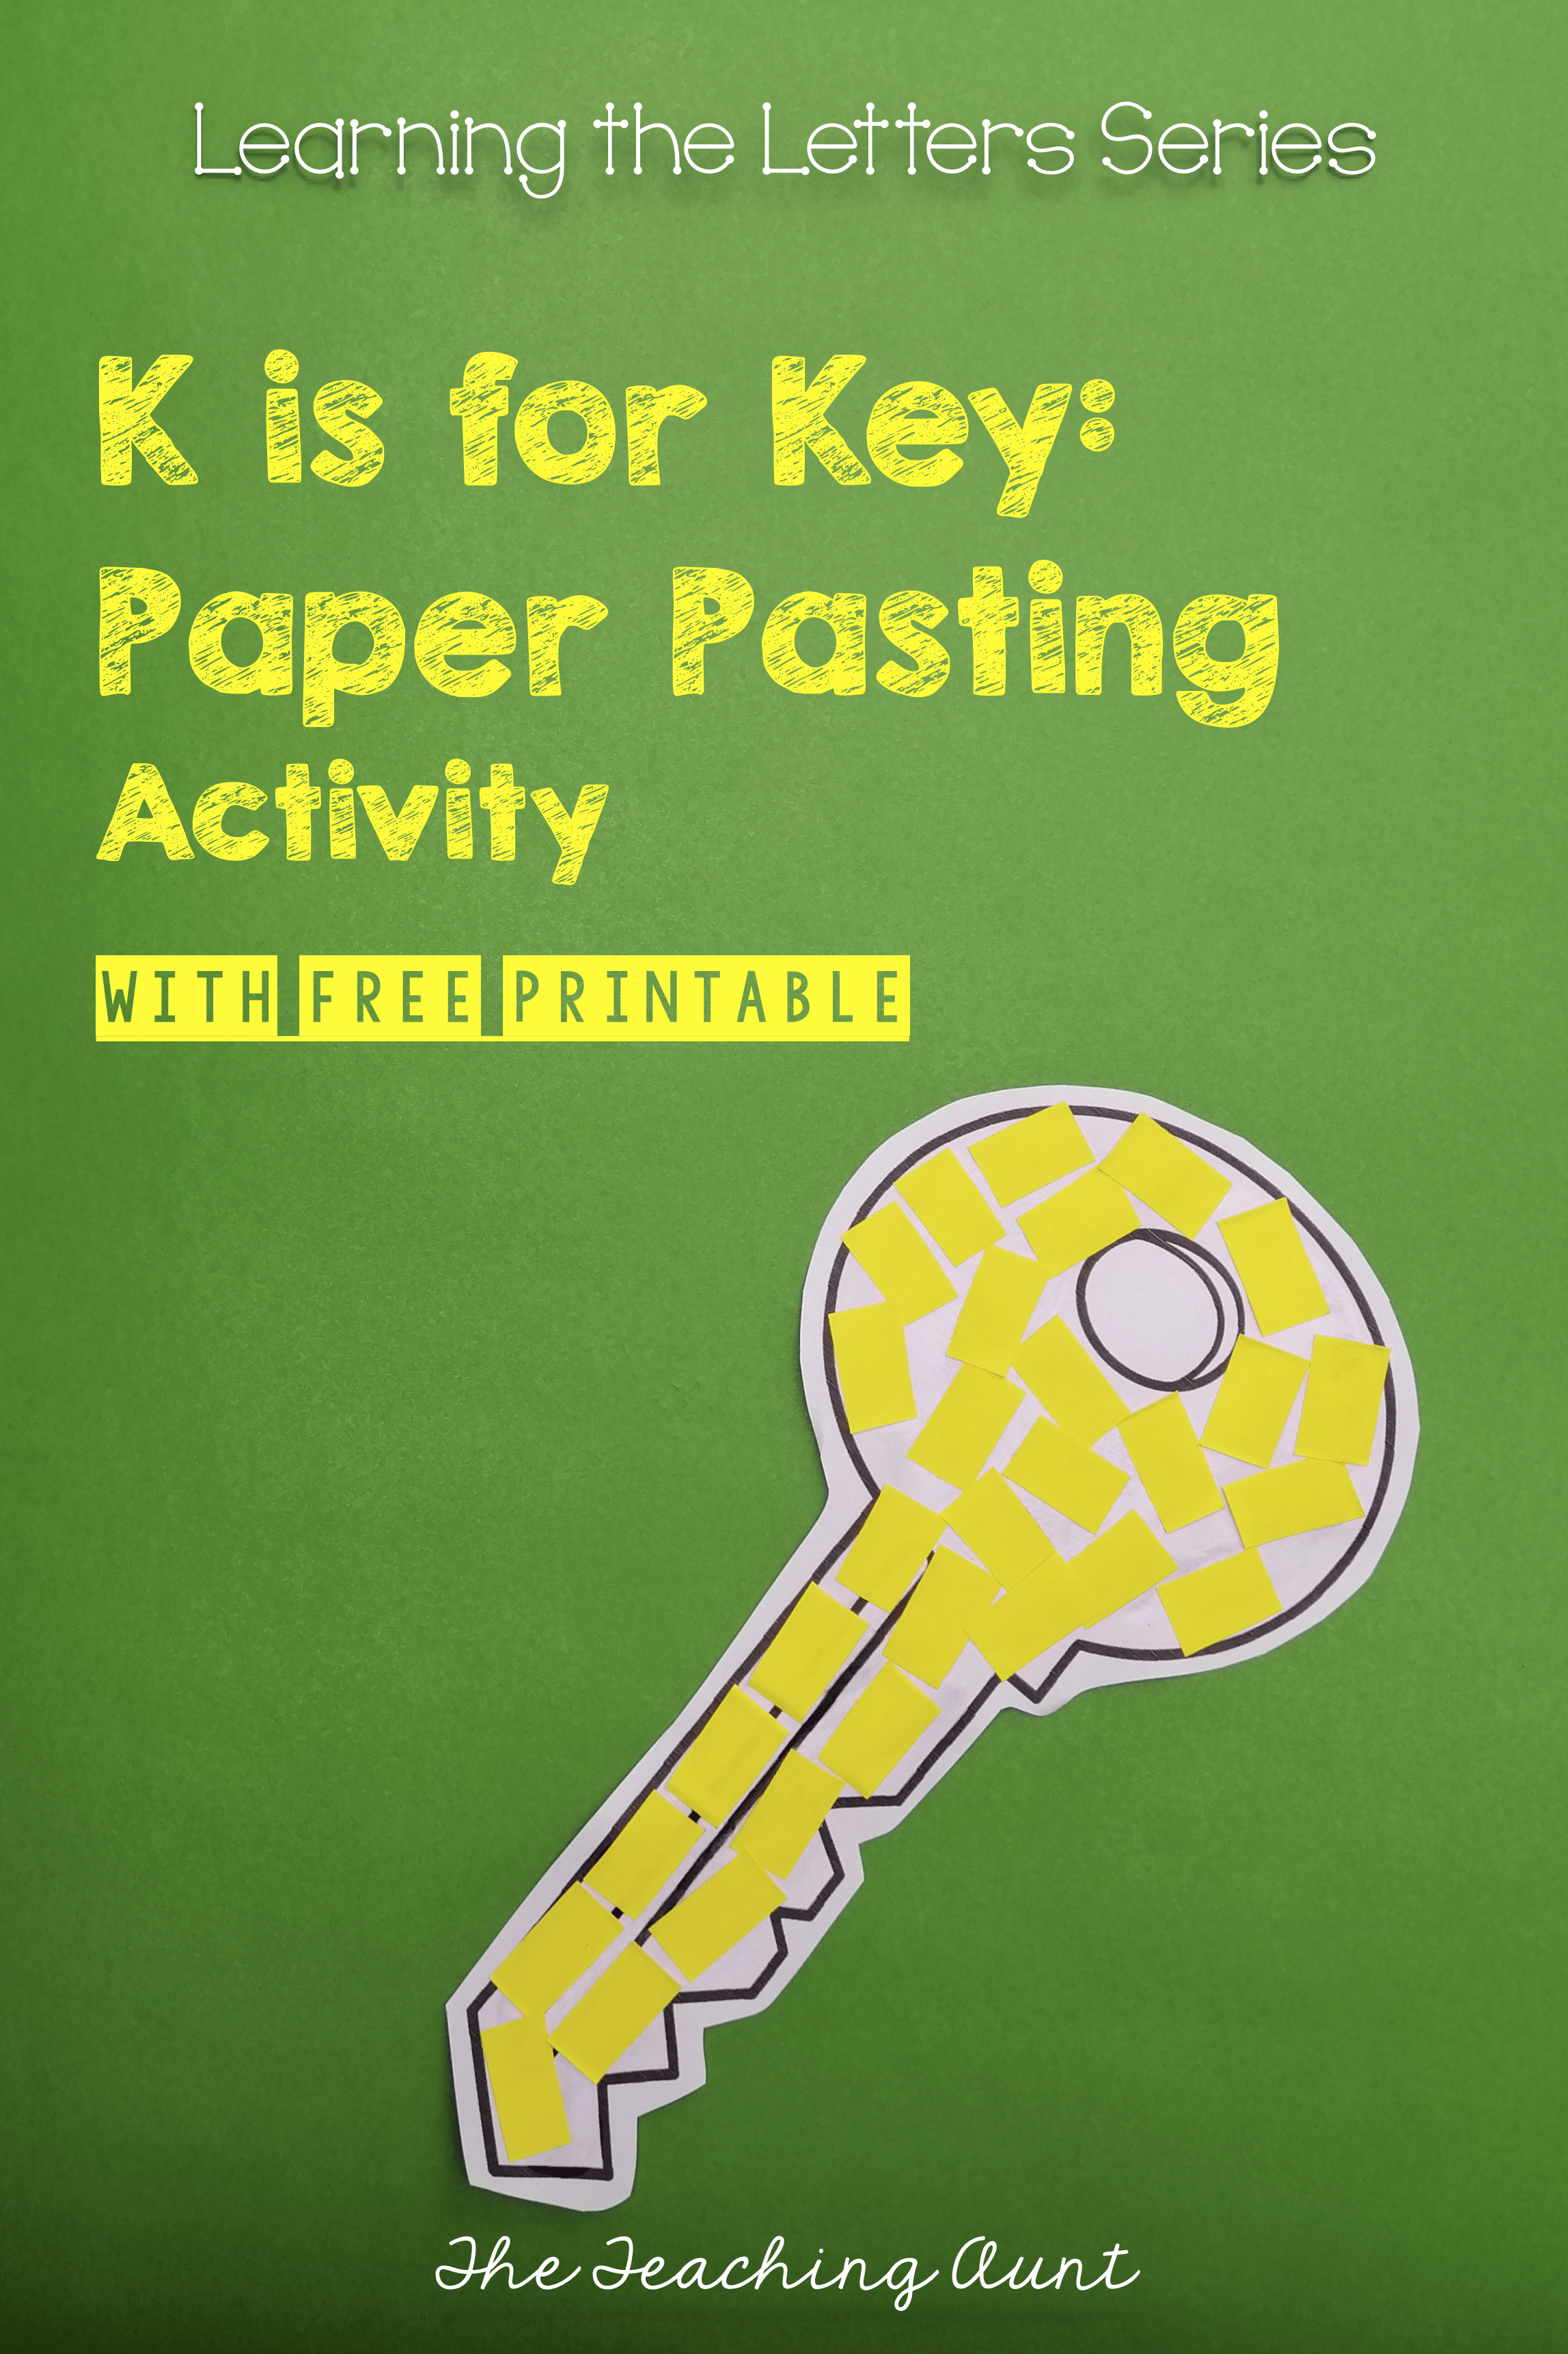 K is for Key: Paper Pasting Activity- Free Worksheet from The Teaching Aunt: Materials and Directions